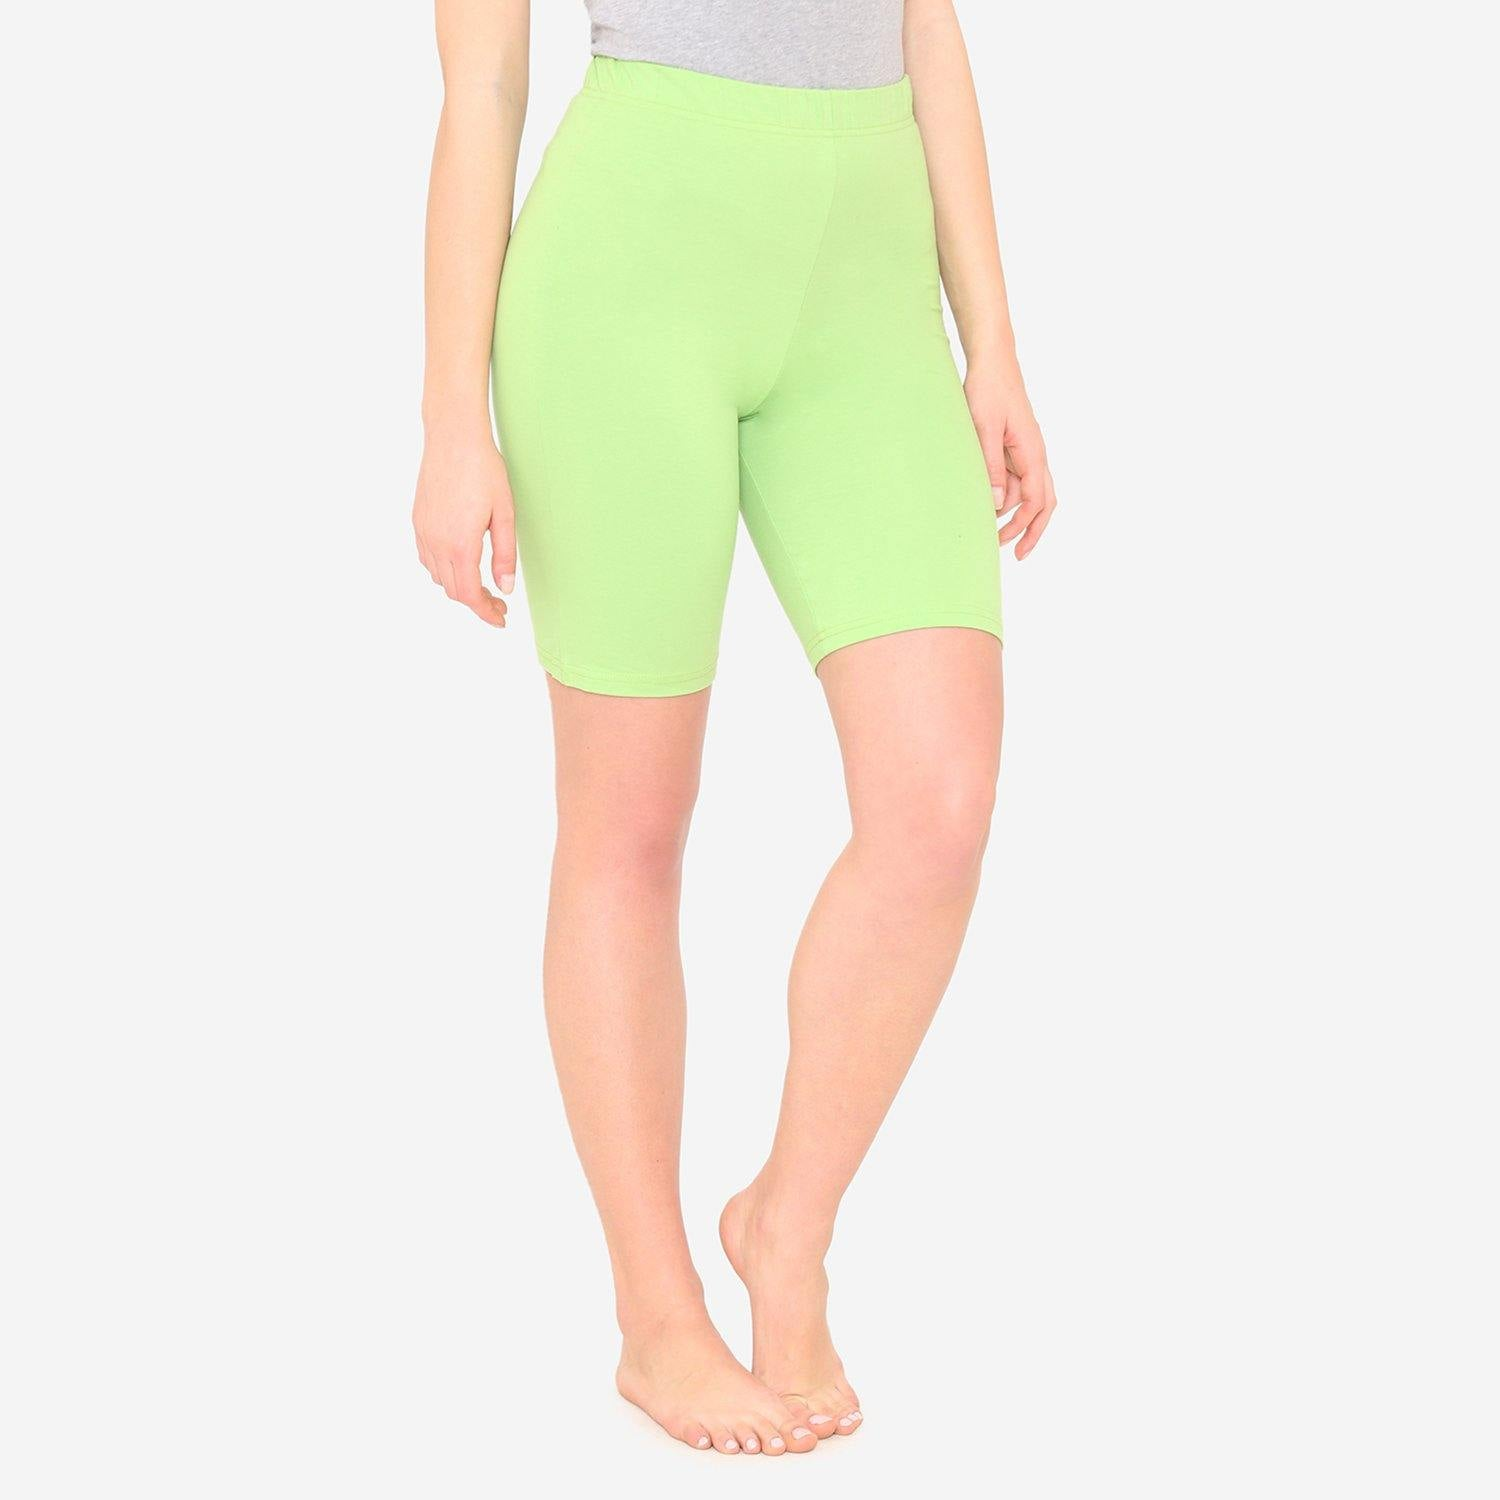 Women's Casual  Plain Shorts for Summer - Green